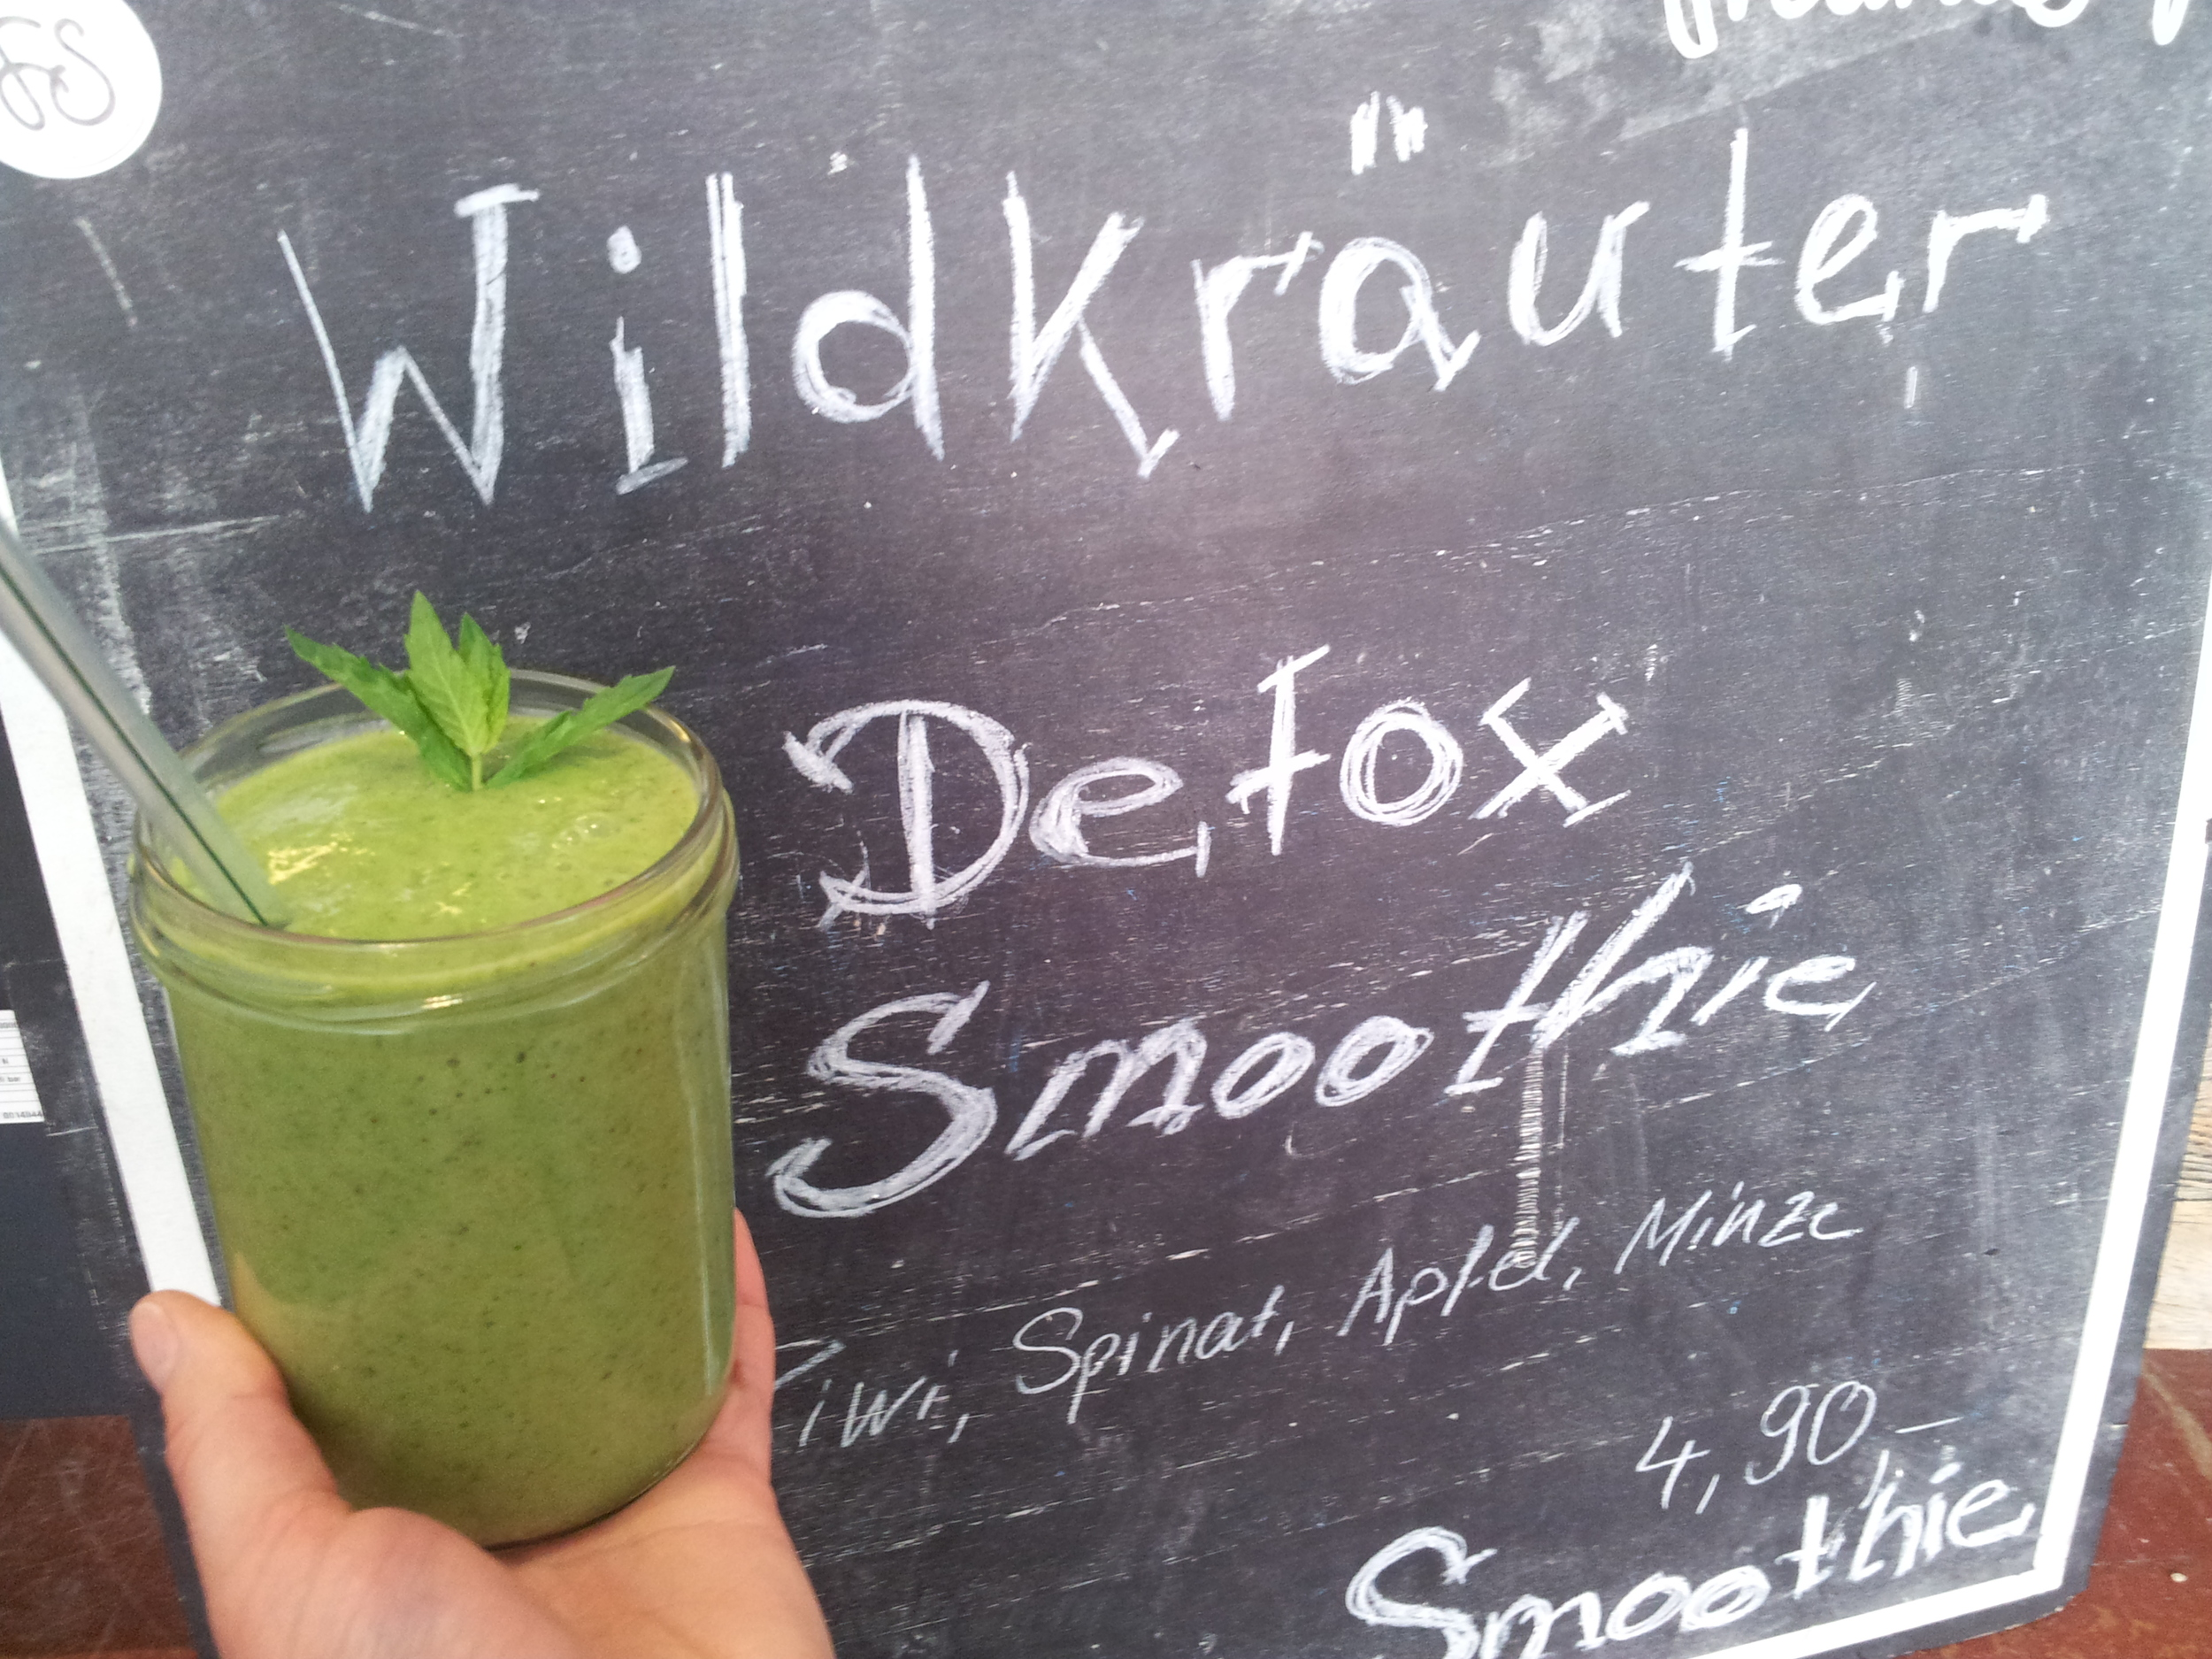 Back in Freiburg I got to enjoy lavishly a wild herb green smoothies at Freundsaft in Freiburg, Germany